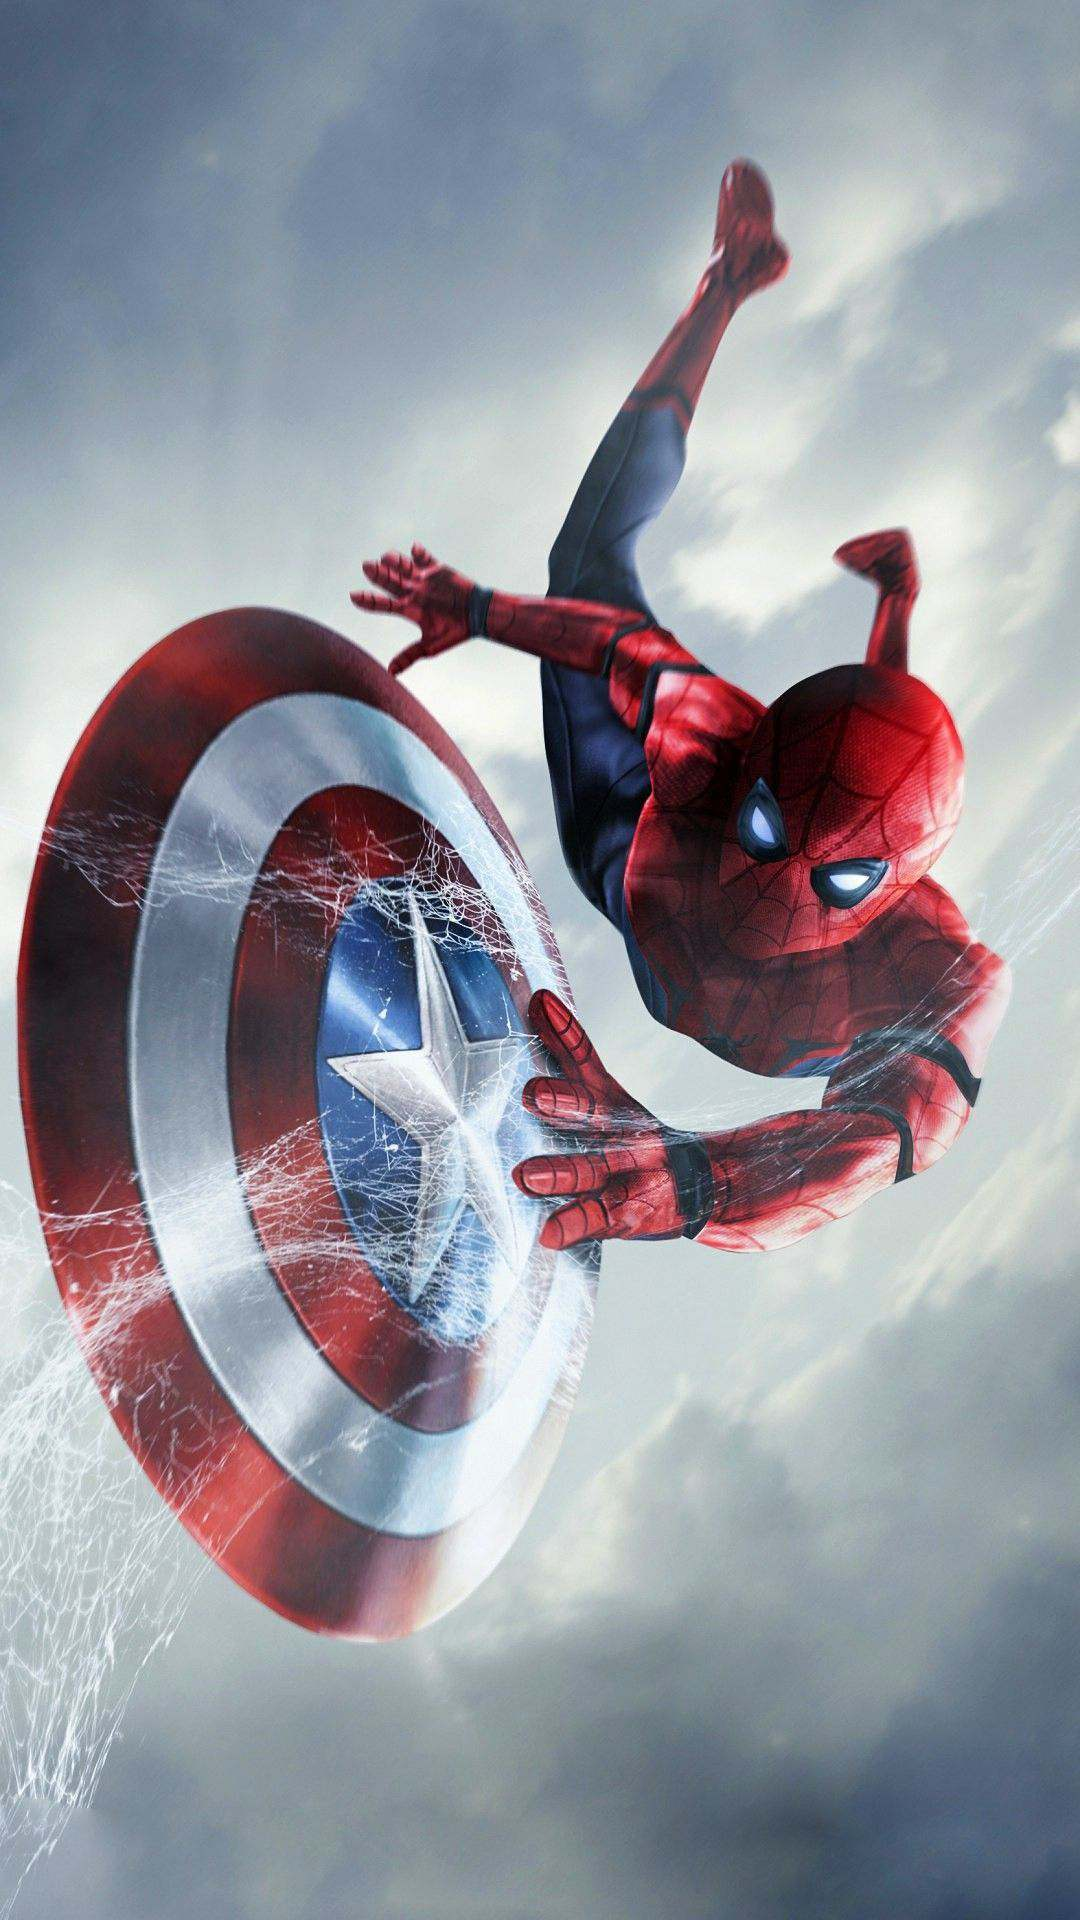 May Girls Wallpaper Spider Man Captain America Shield Iphone Wallpaper